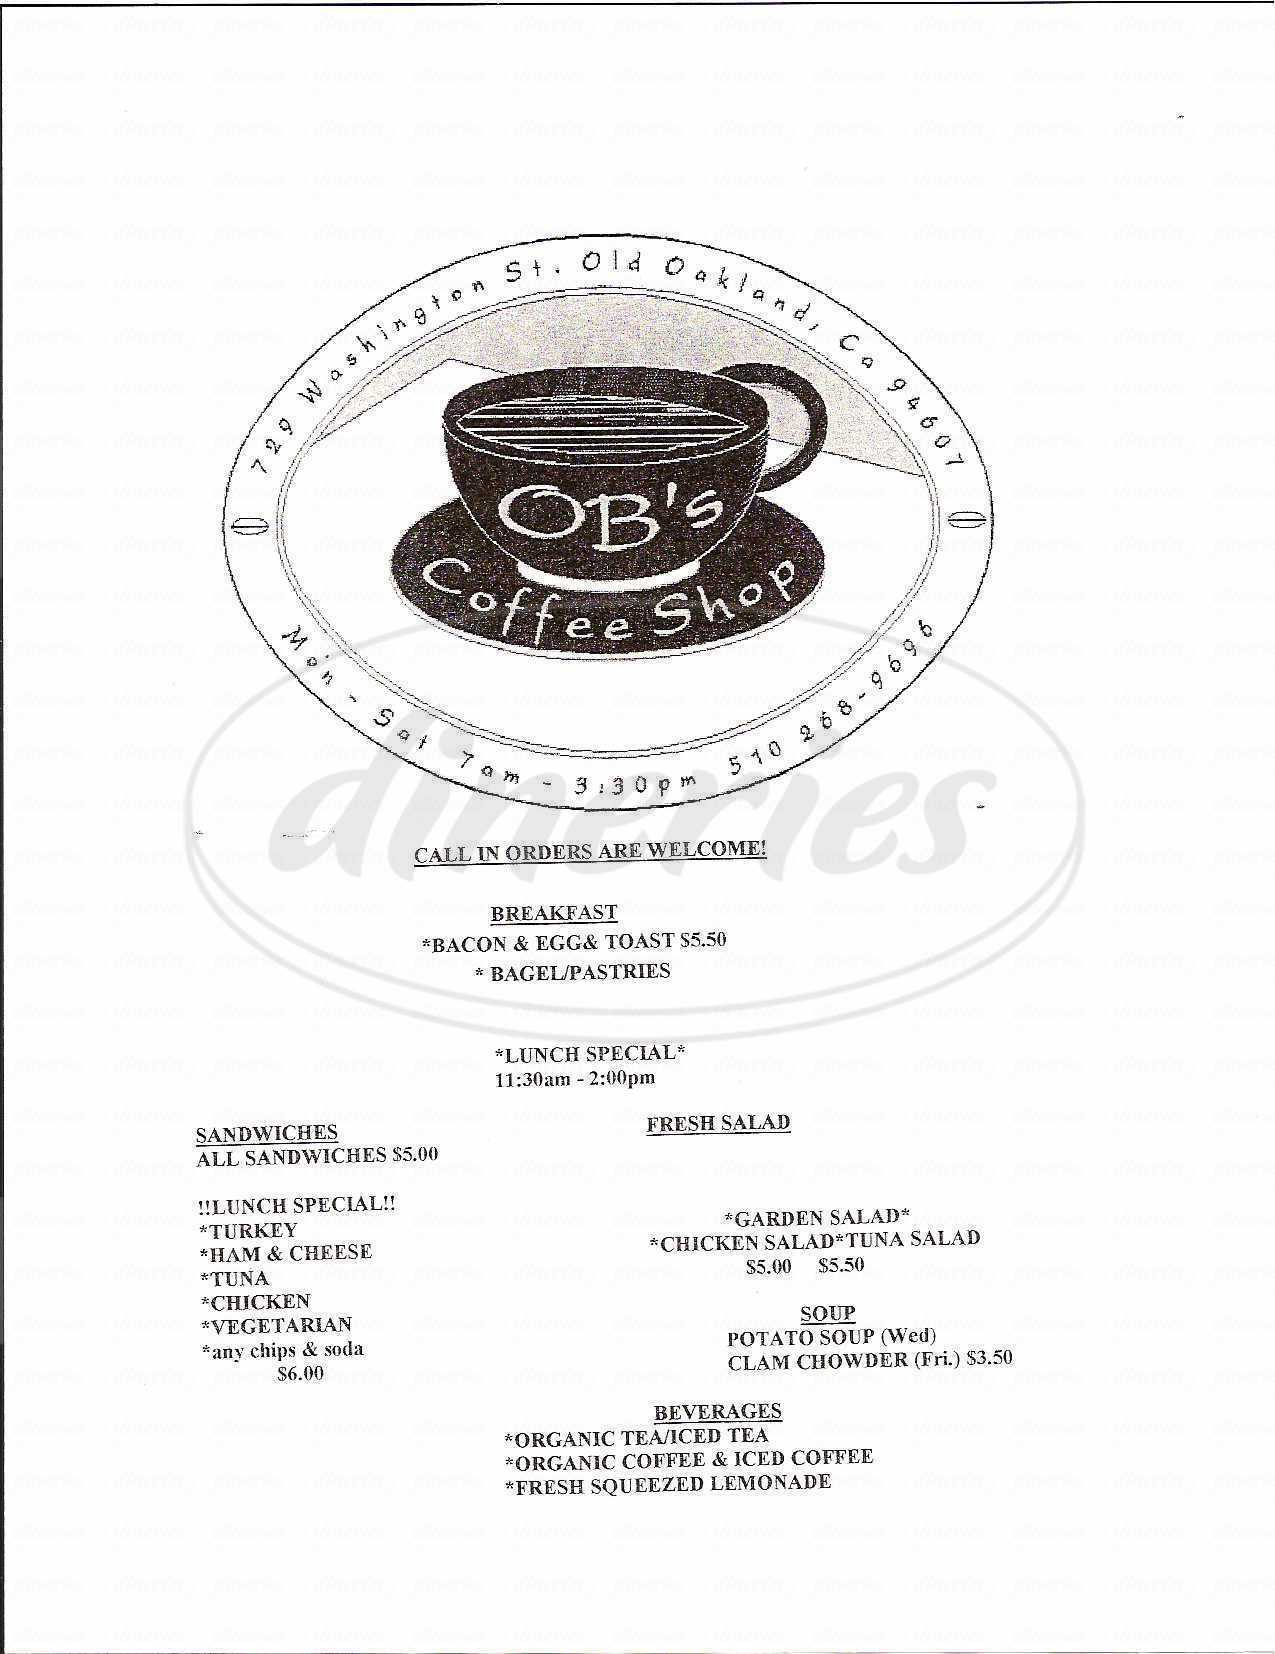 menu for OB's Coffee Shop